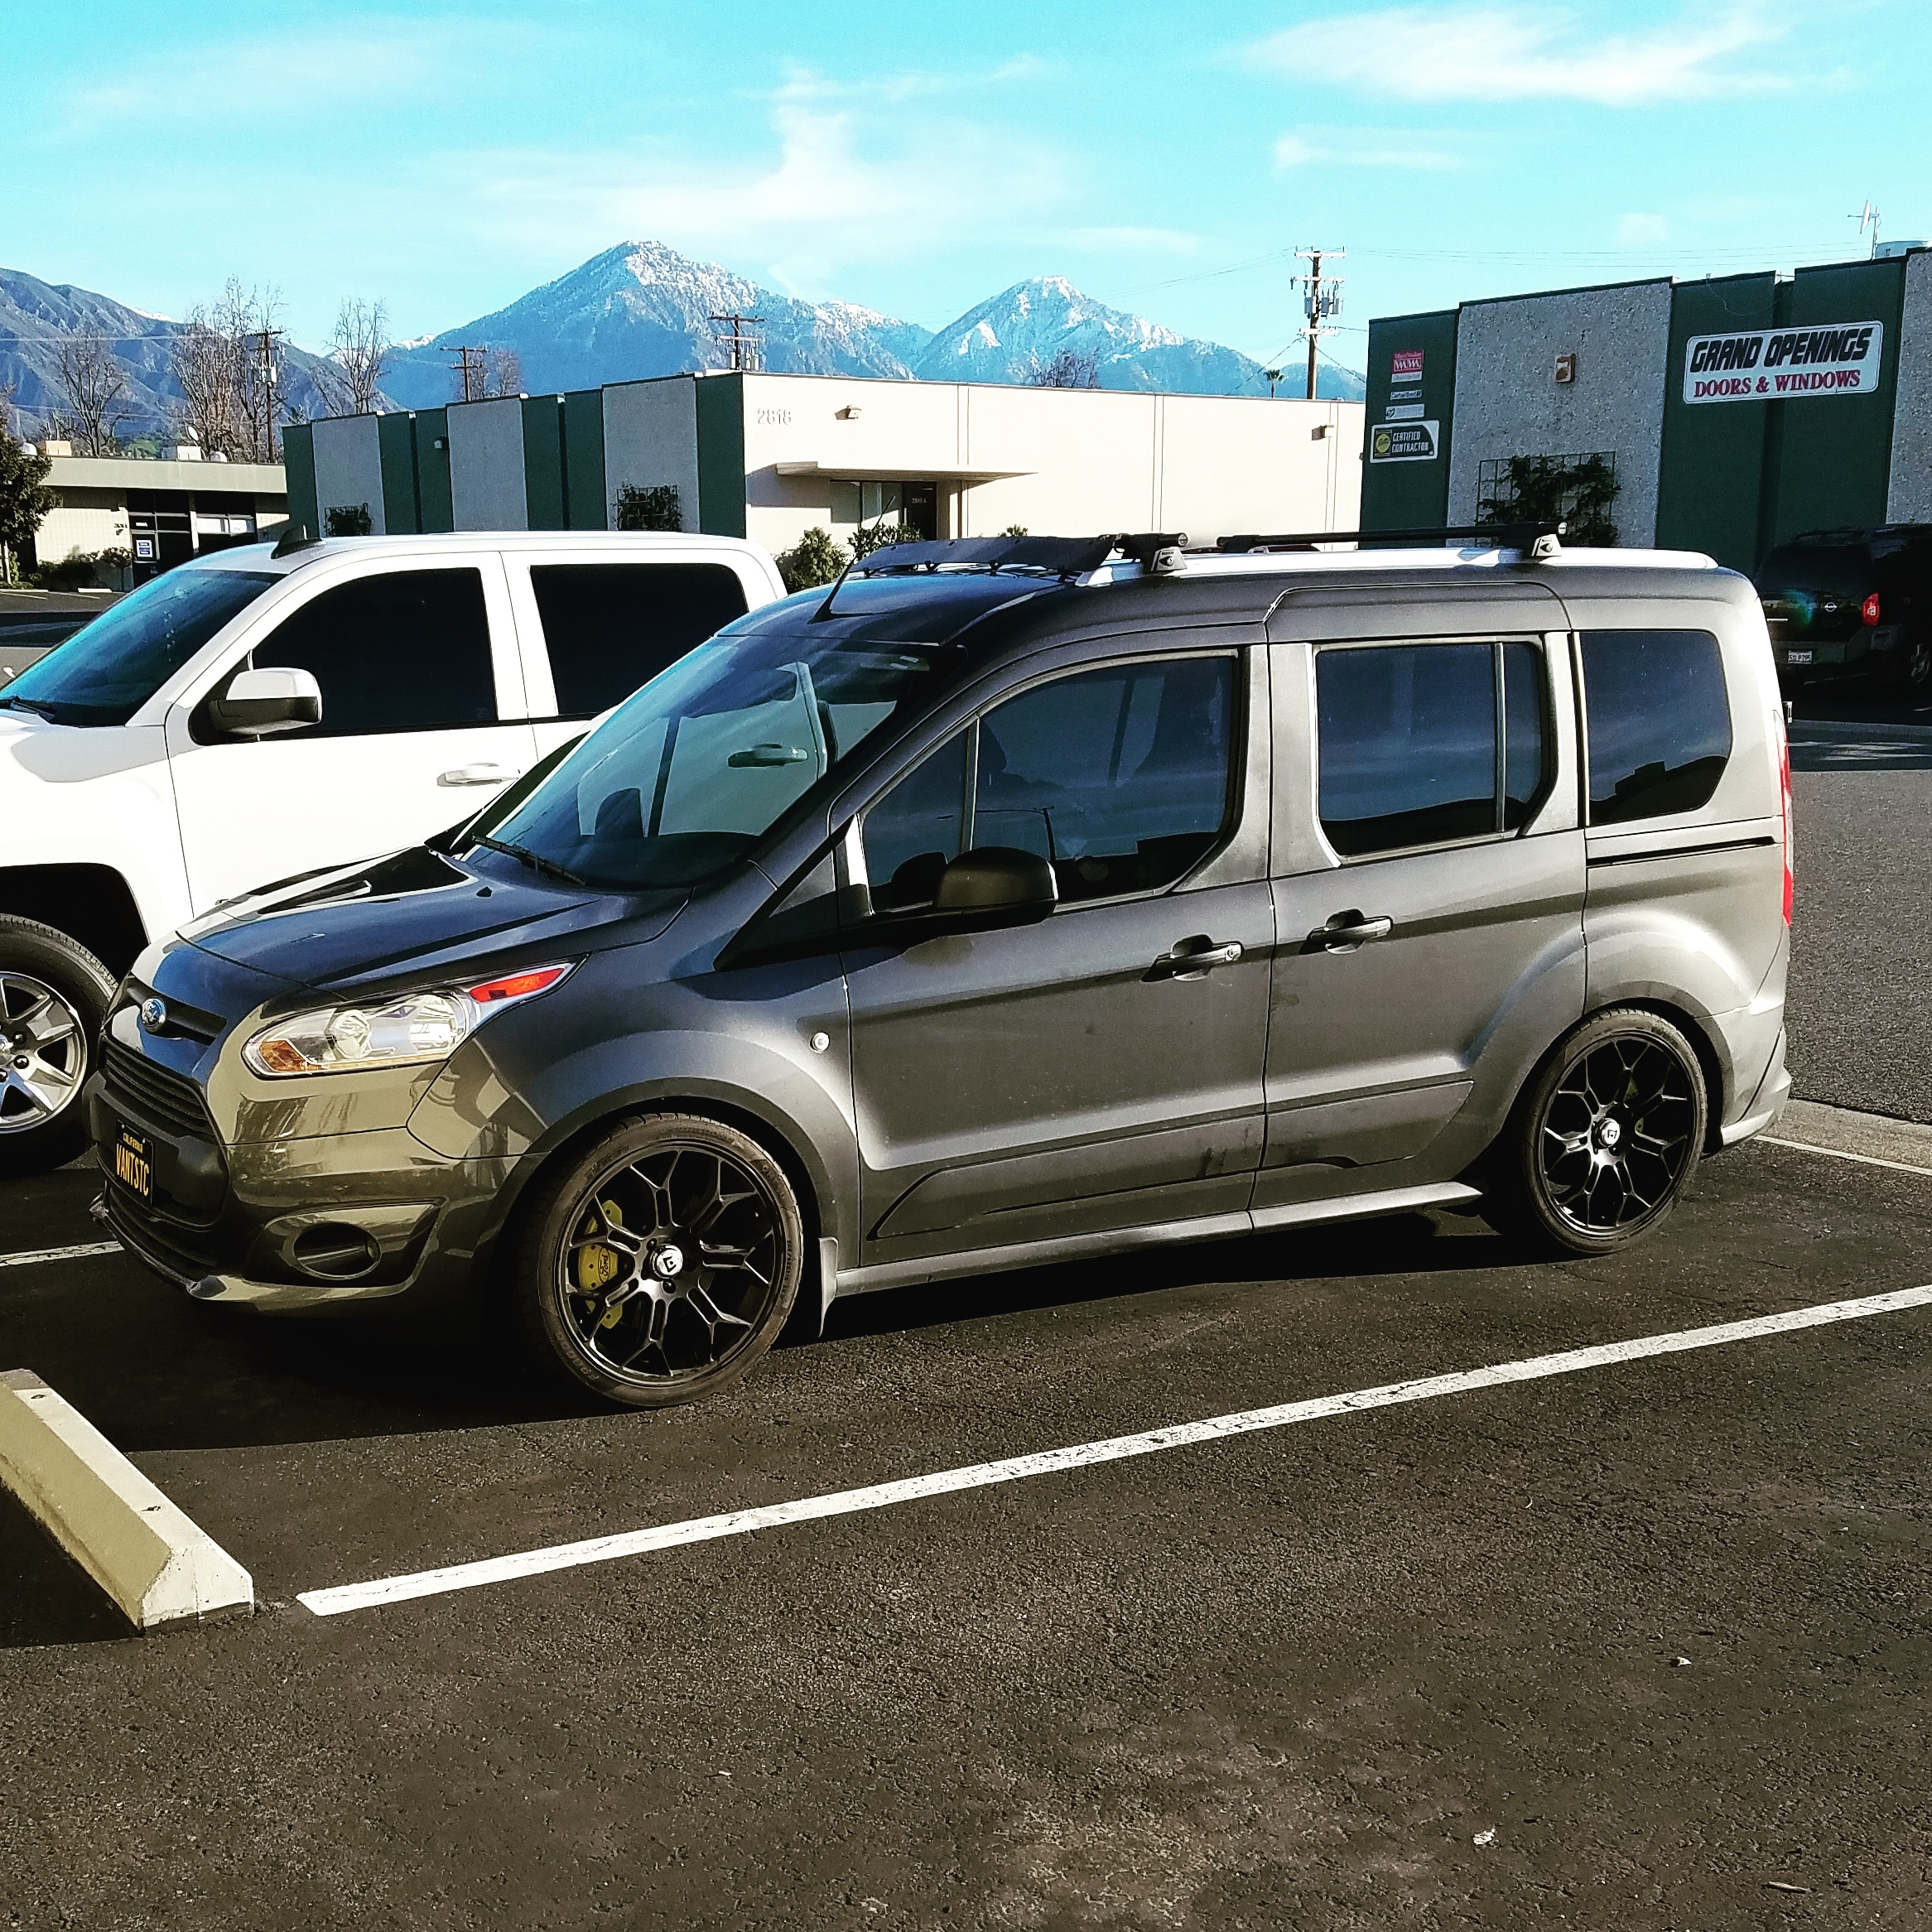 2016 Ford Transit Van >> Doing a lot of Custom Stuff This Weekend - Accessories and Modifications - Ford Transit Connect ...